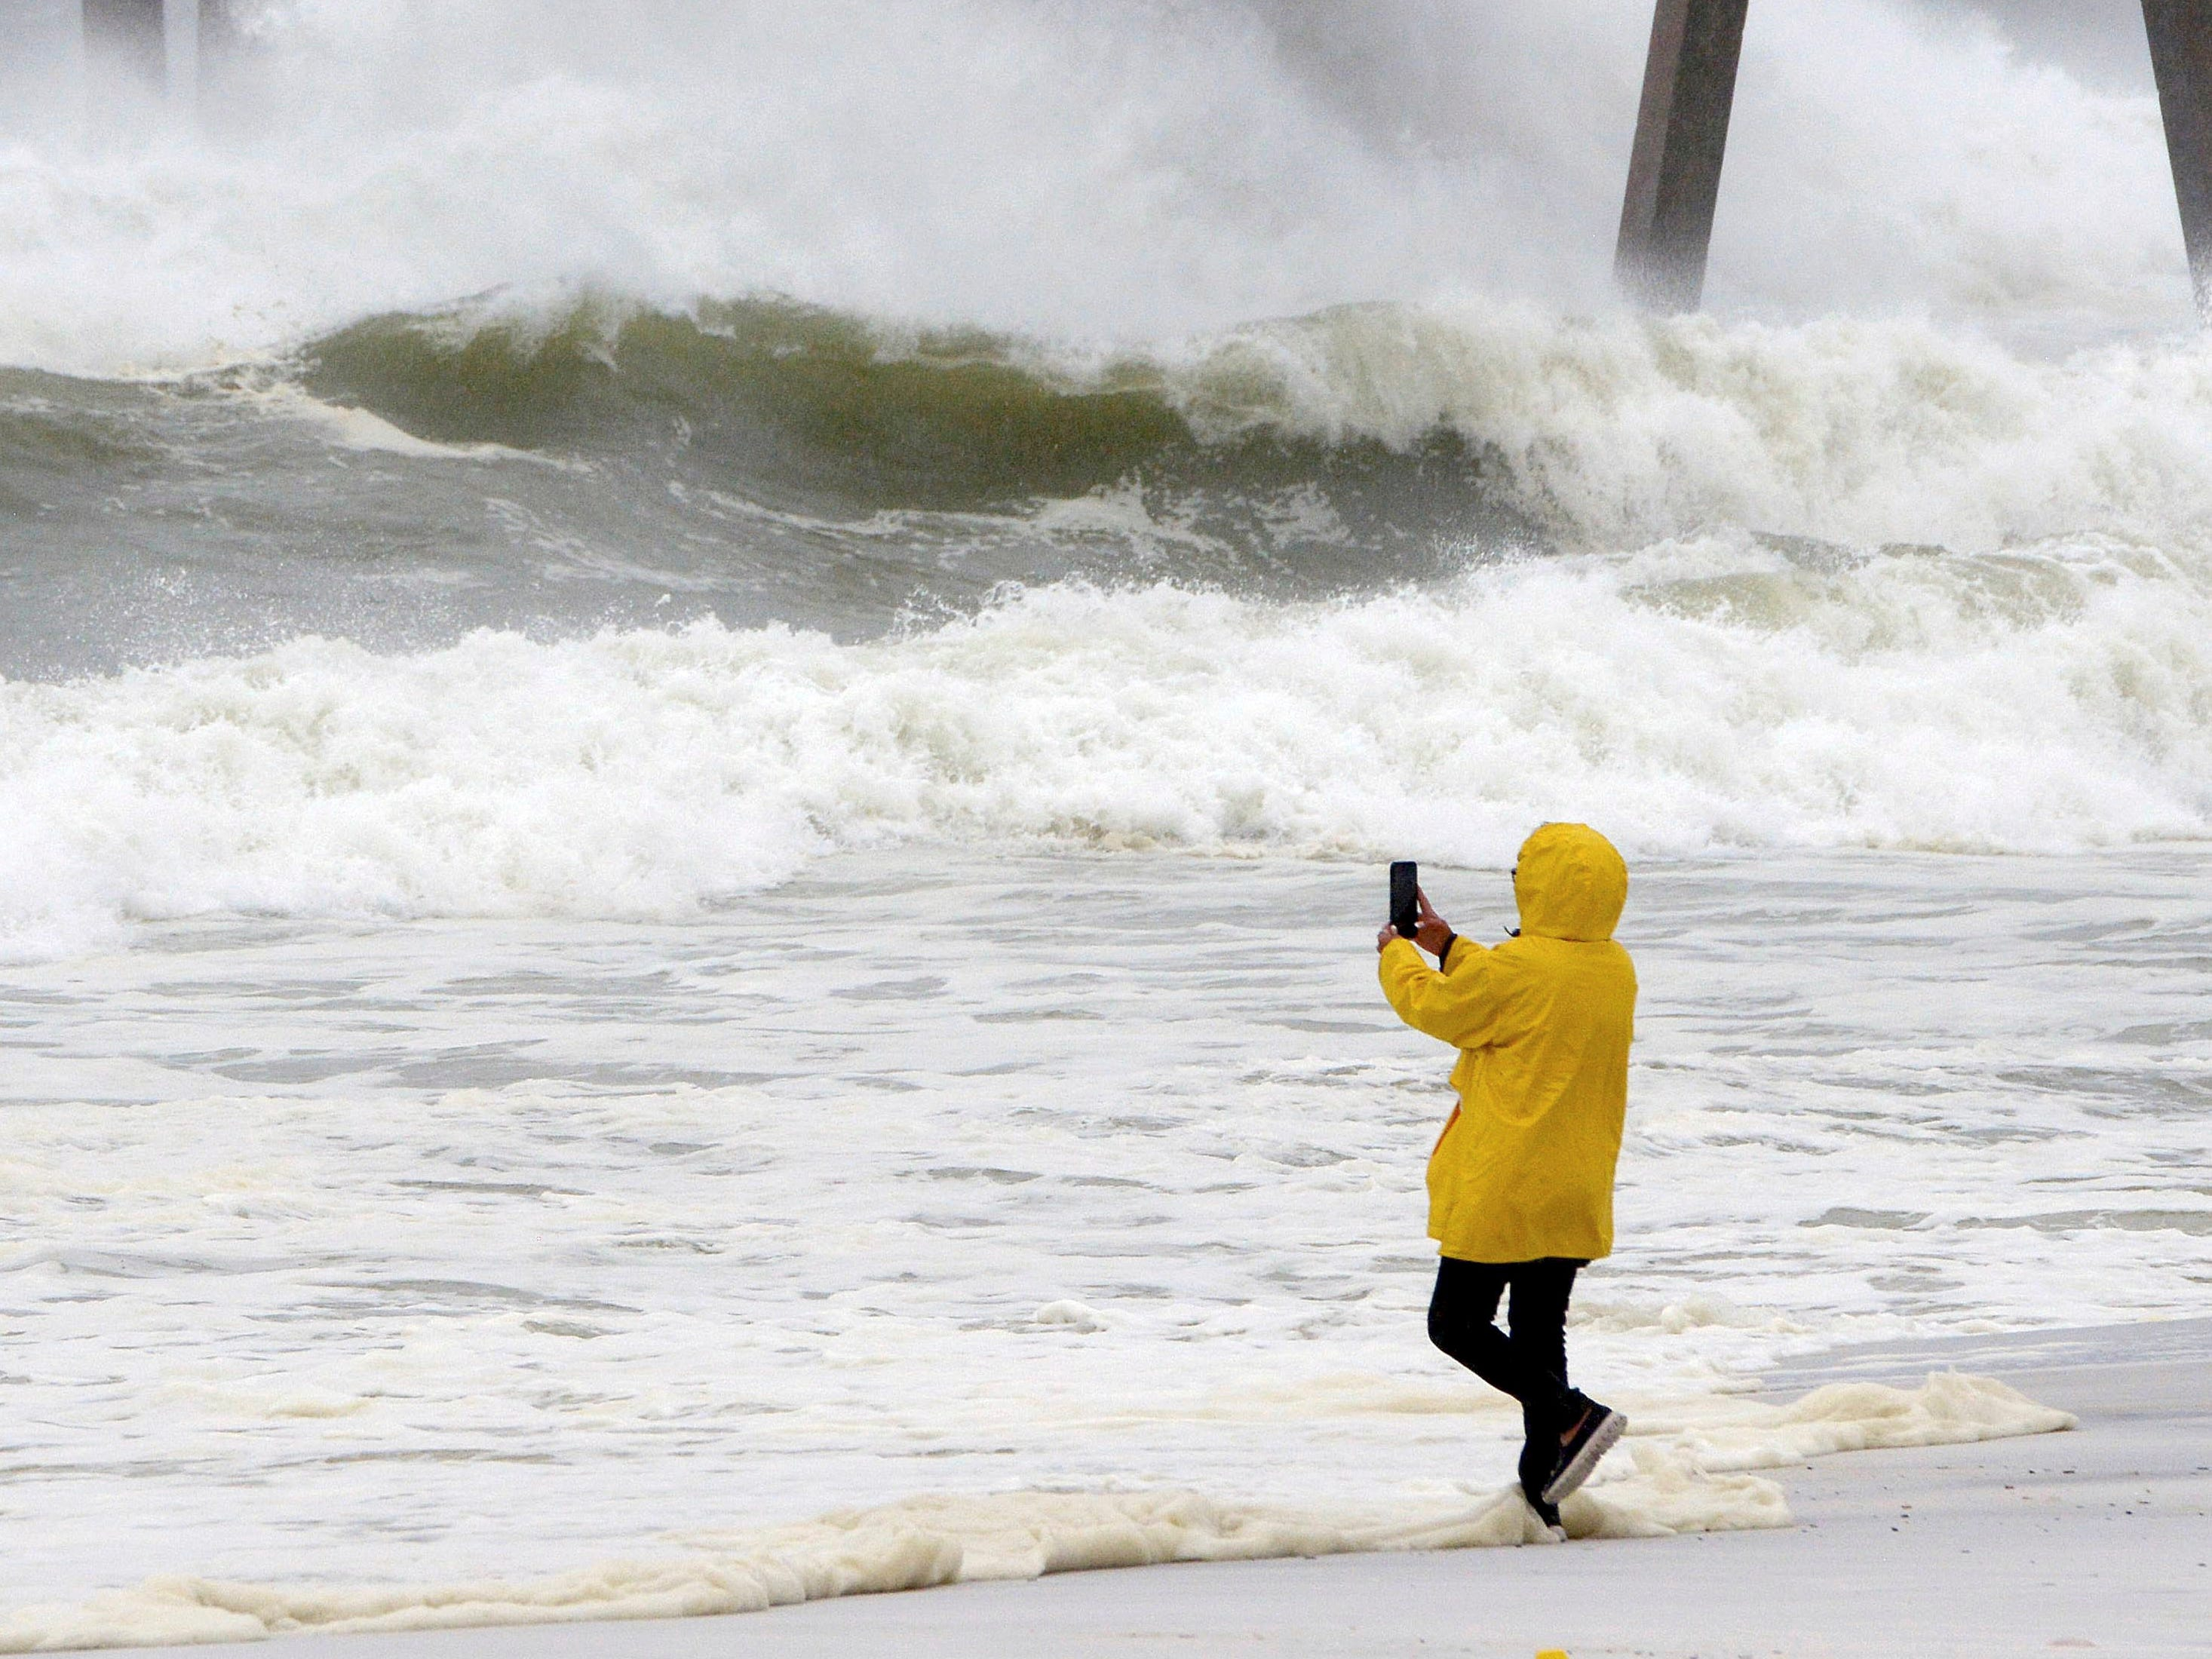 A beachgoer take photos of the waves on Wednesday Oct. 10, 2018, on Okaloosa Island in Fort Walton Beach, Fla., behind the boardwalk as Hurricane Michael impacts the coast. (Nick Tomecek/Northwest Florida Daily News via AP) ORG XMIT: FLPLA104